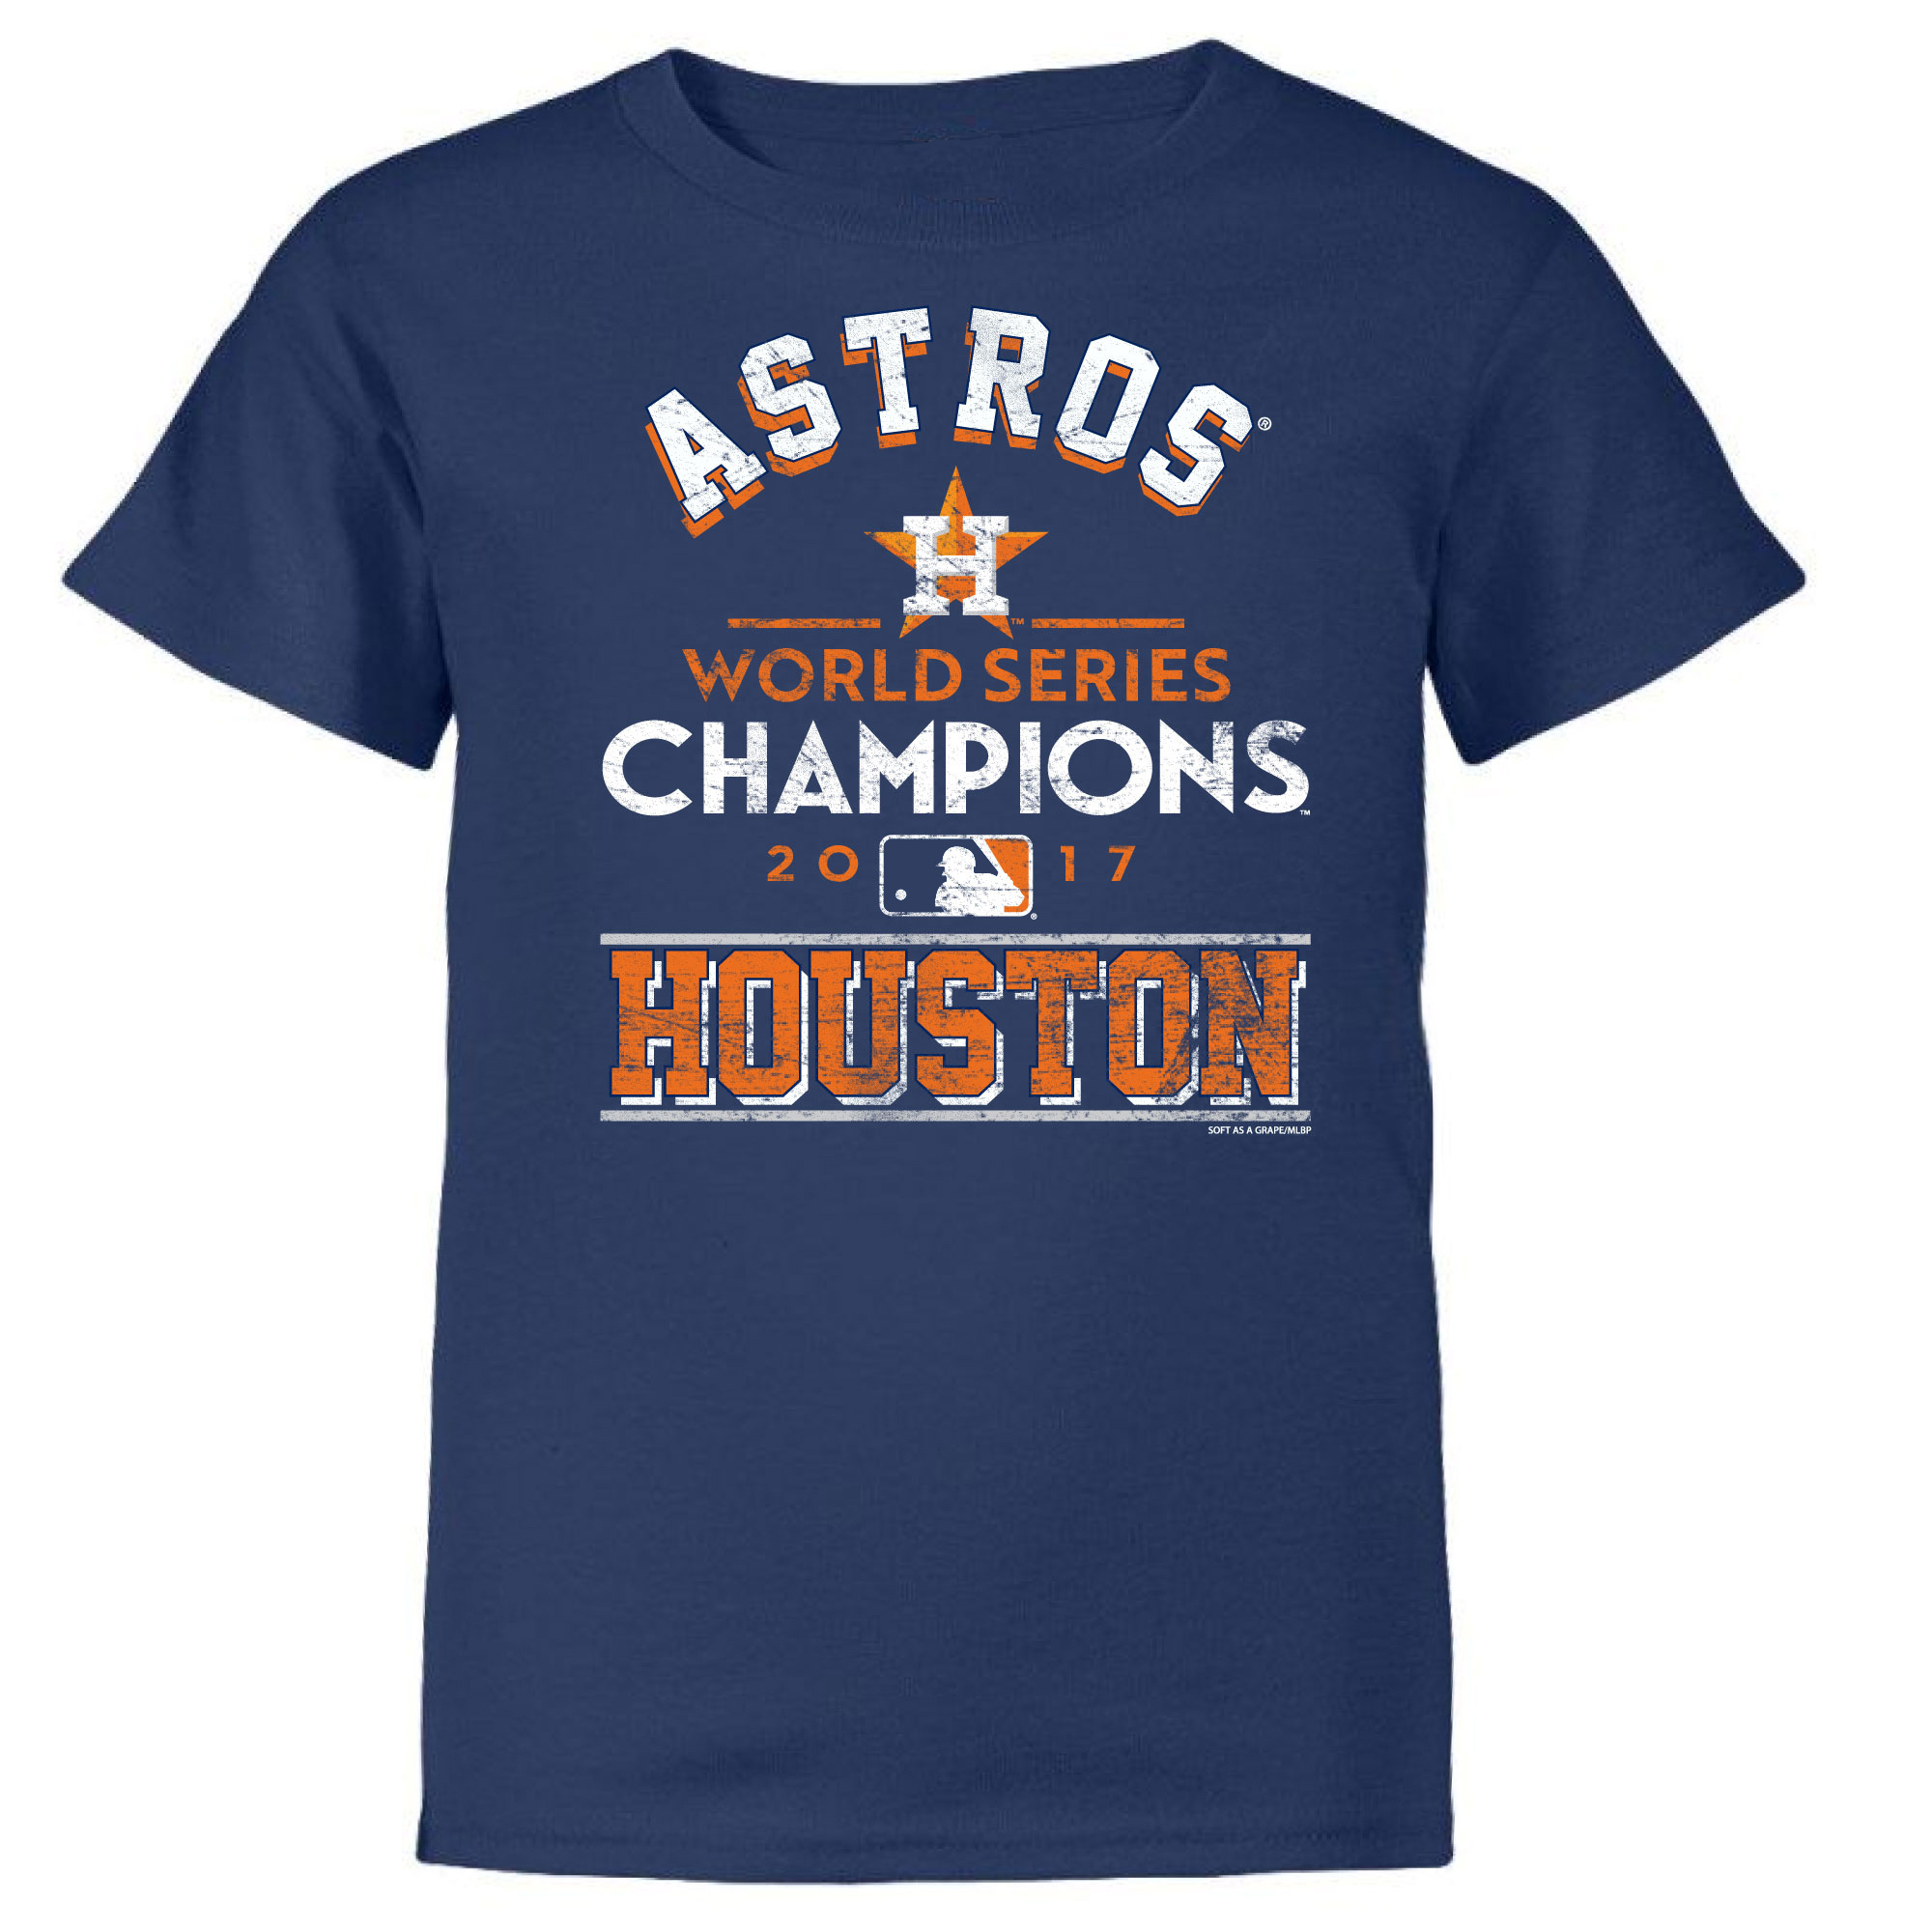 Houston Astros Soft as a Grape Youth 2017 World Series Champions T-Shirt - Navy